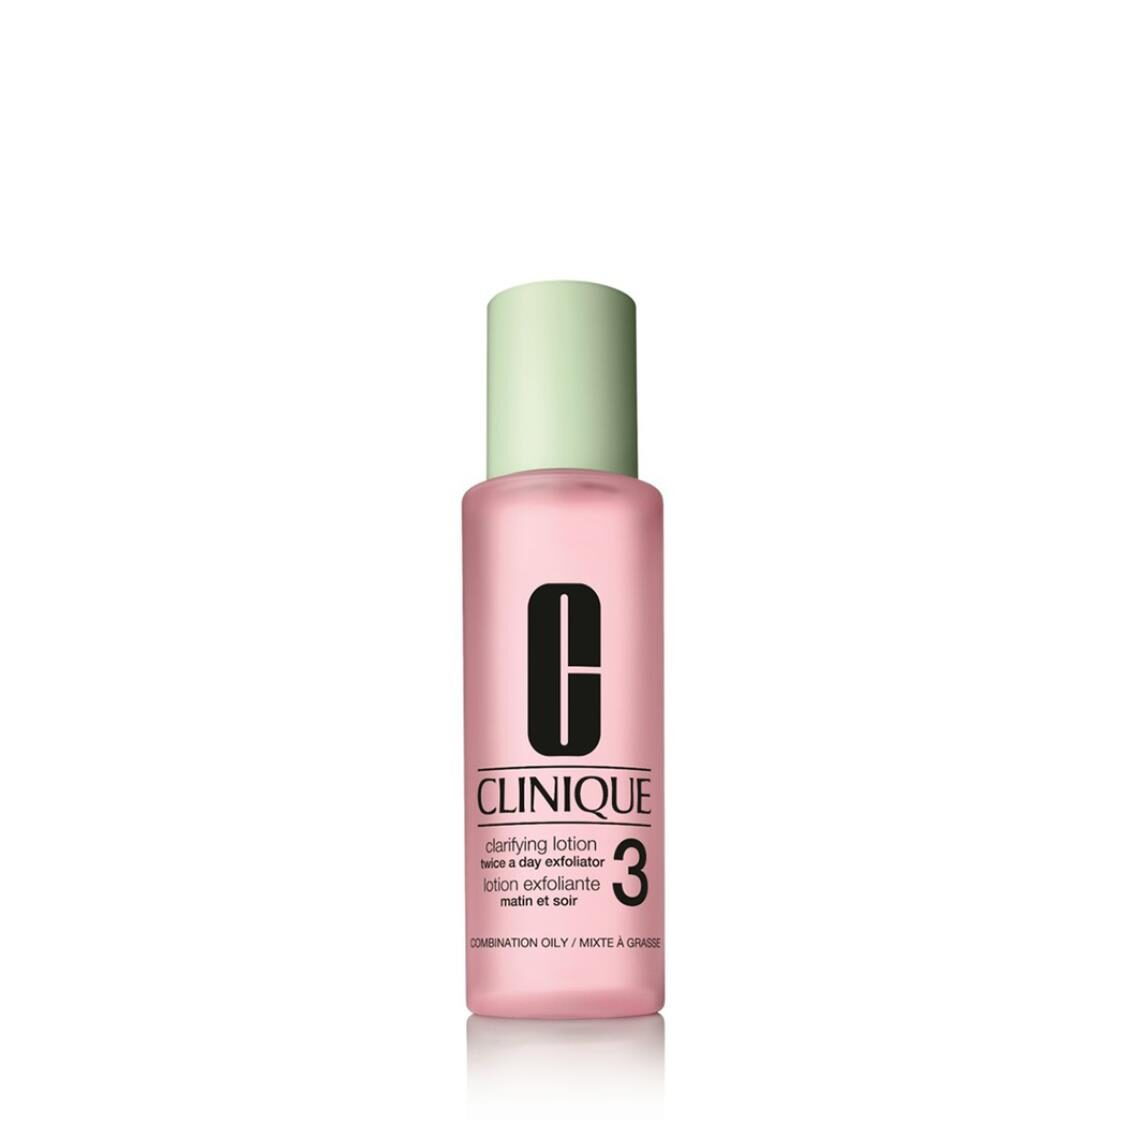 Clinique Twice A Day Clarifying Lotion 3 400ml